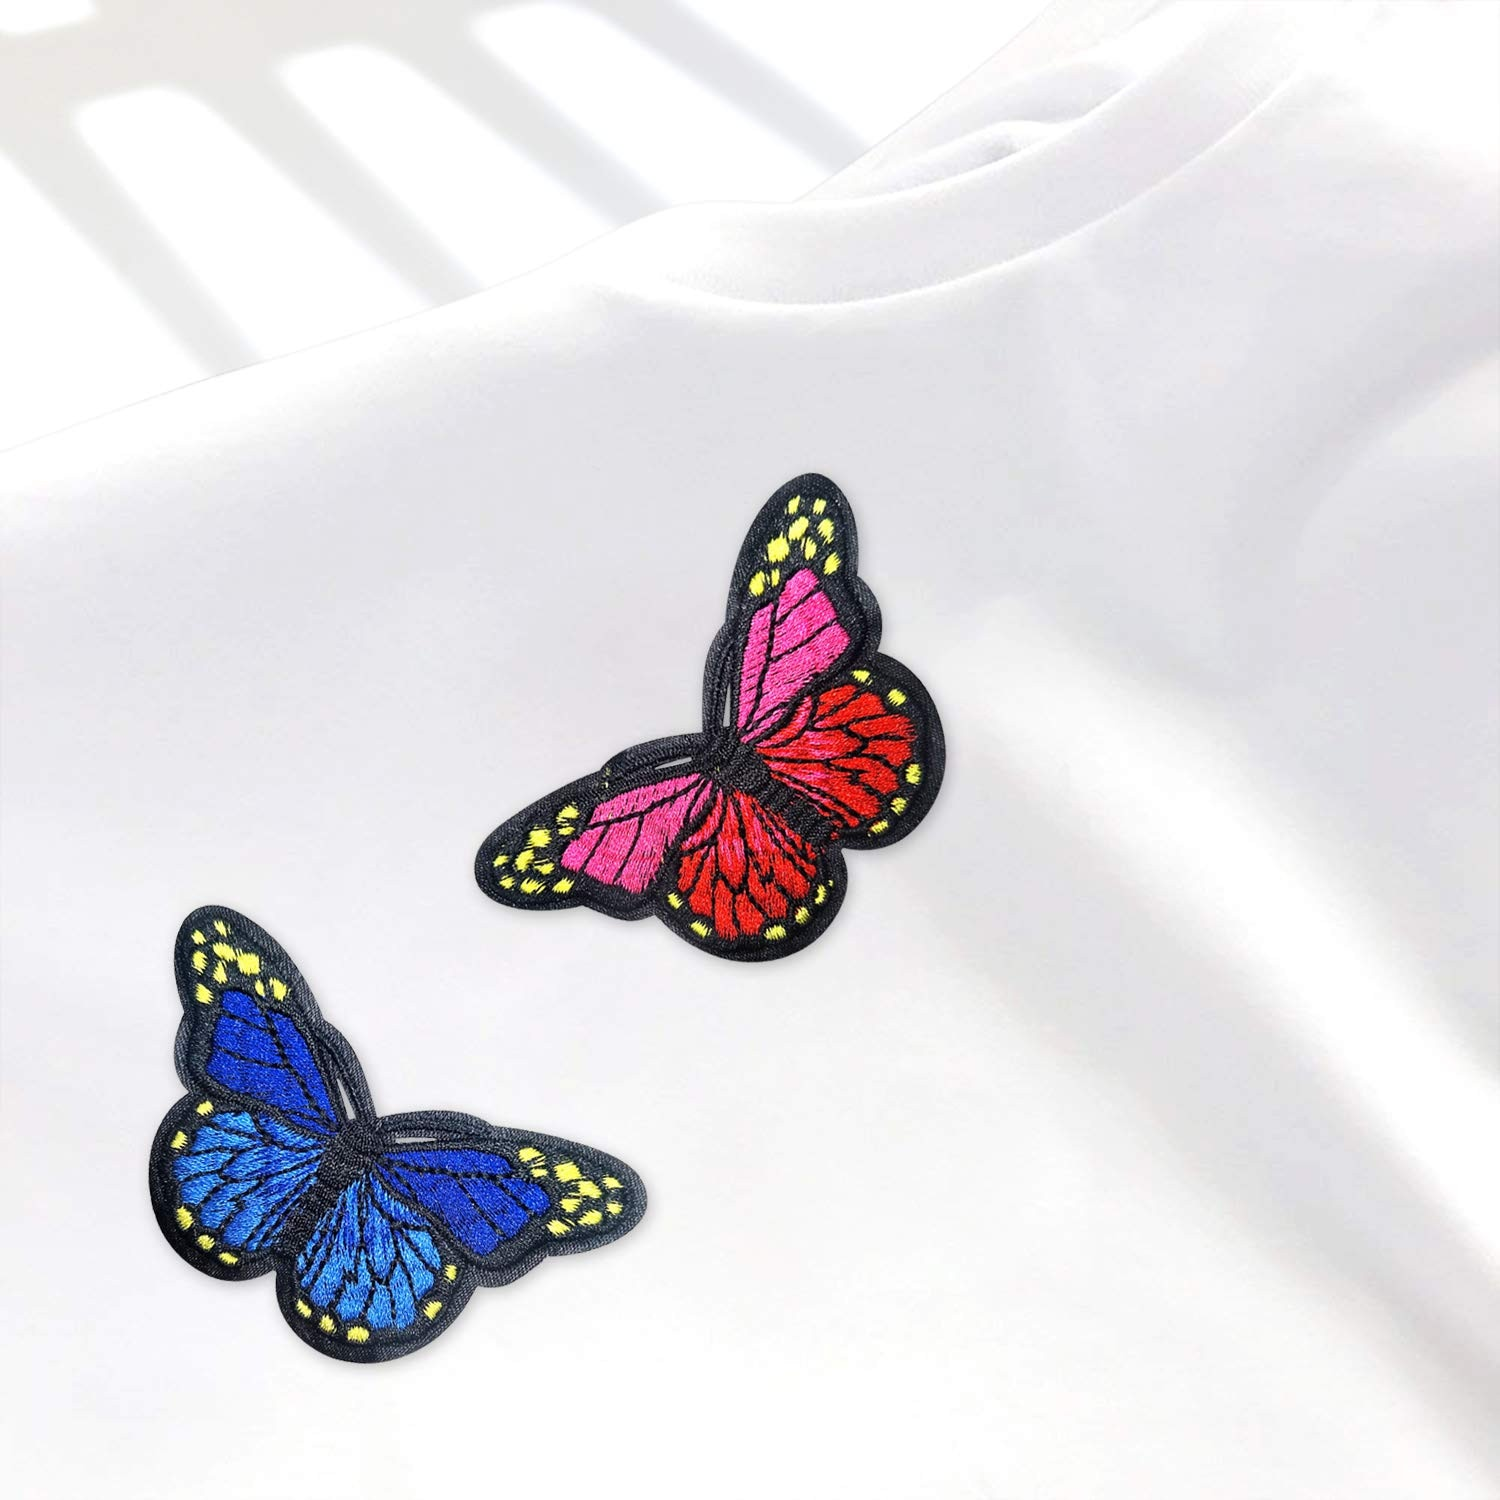 20pcs/lot Colorful Butterfly Fridge Magnets 3D Butterfly Design Art Stickers Room Magnetic Home Decor DIY Wall Decoration